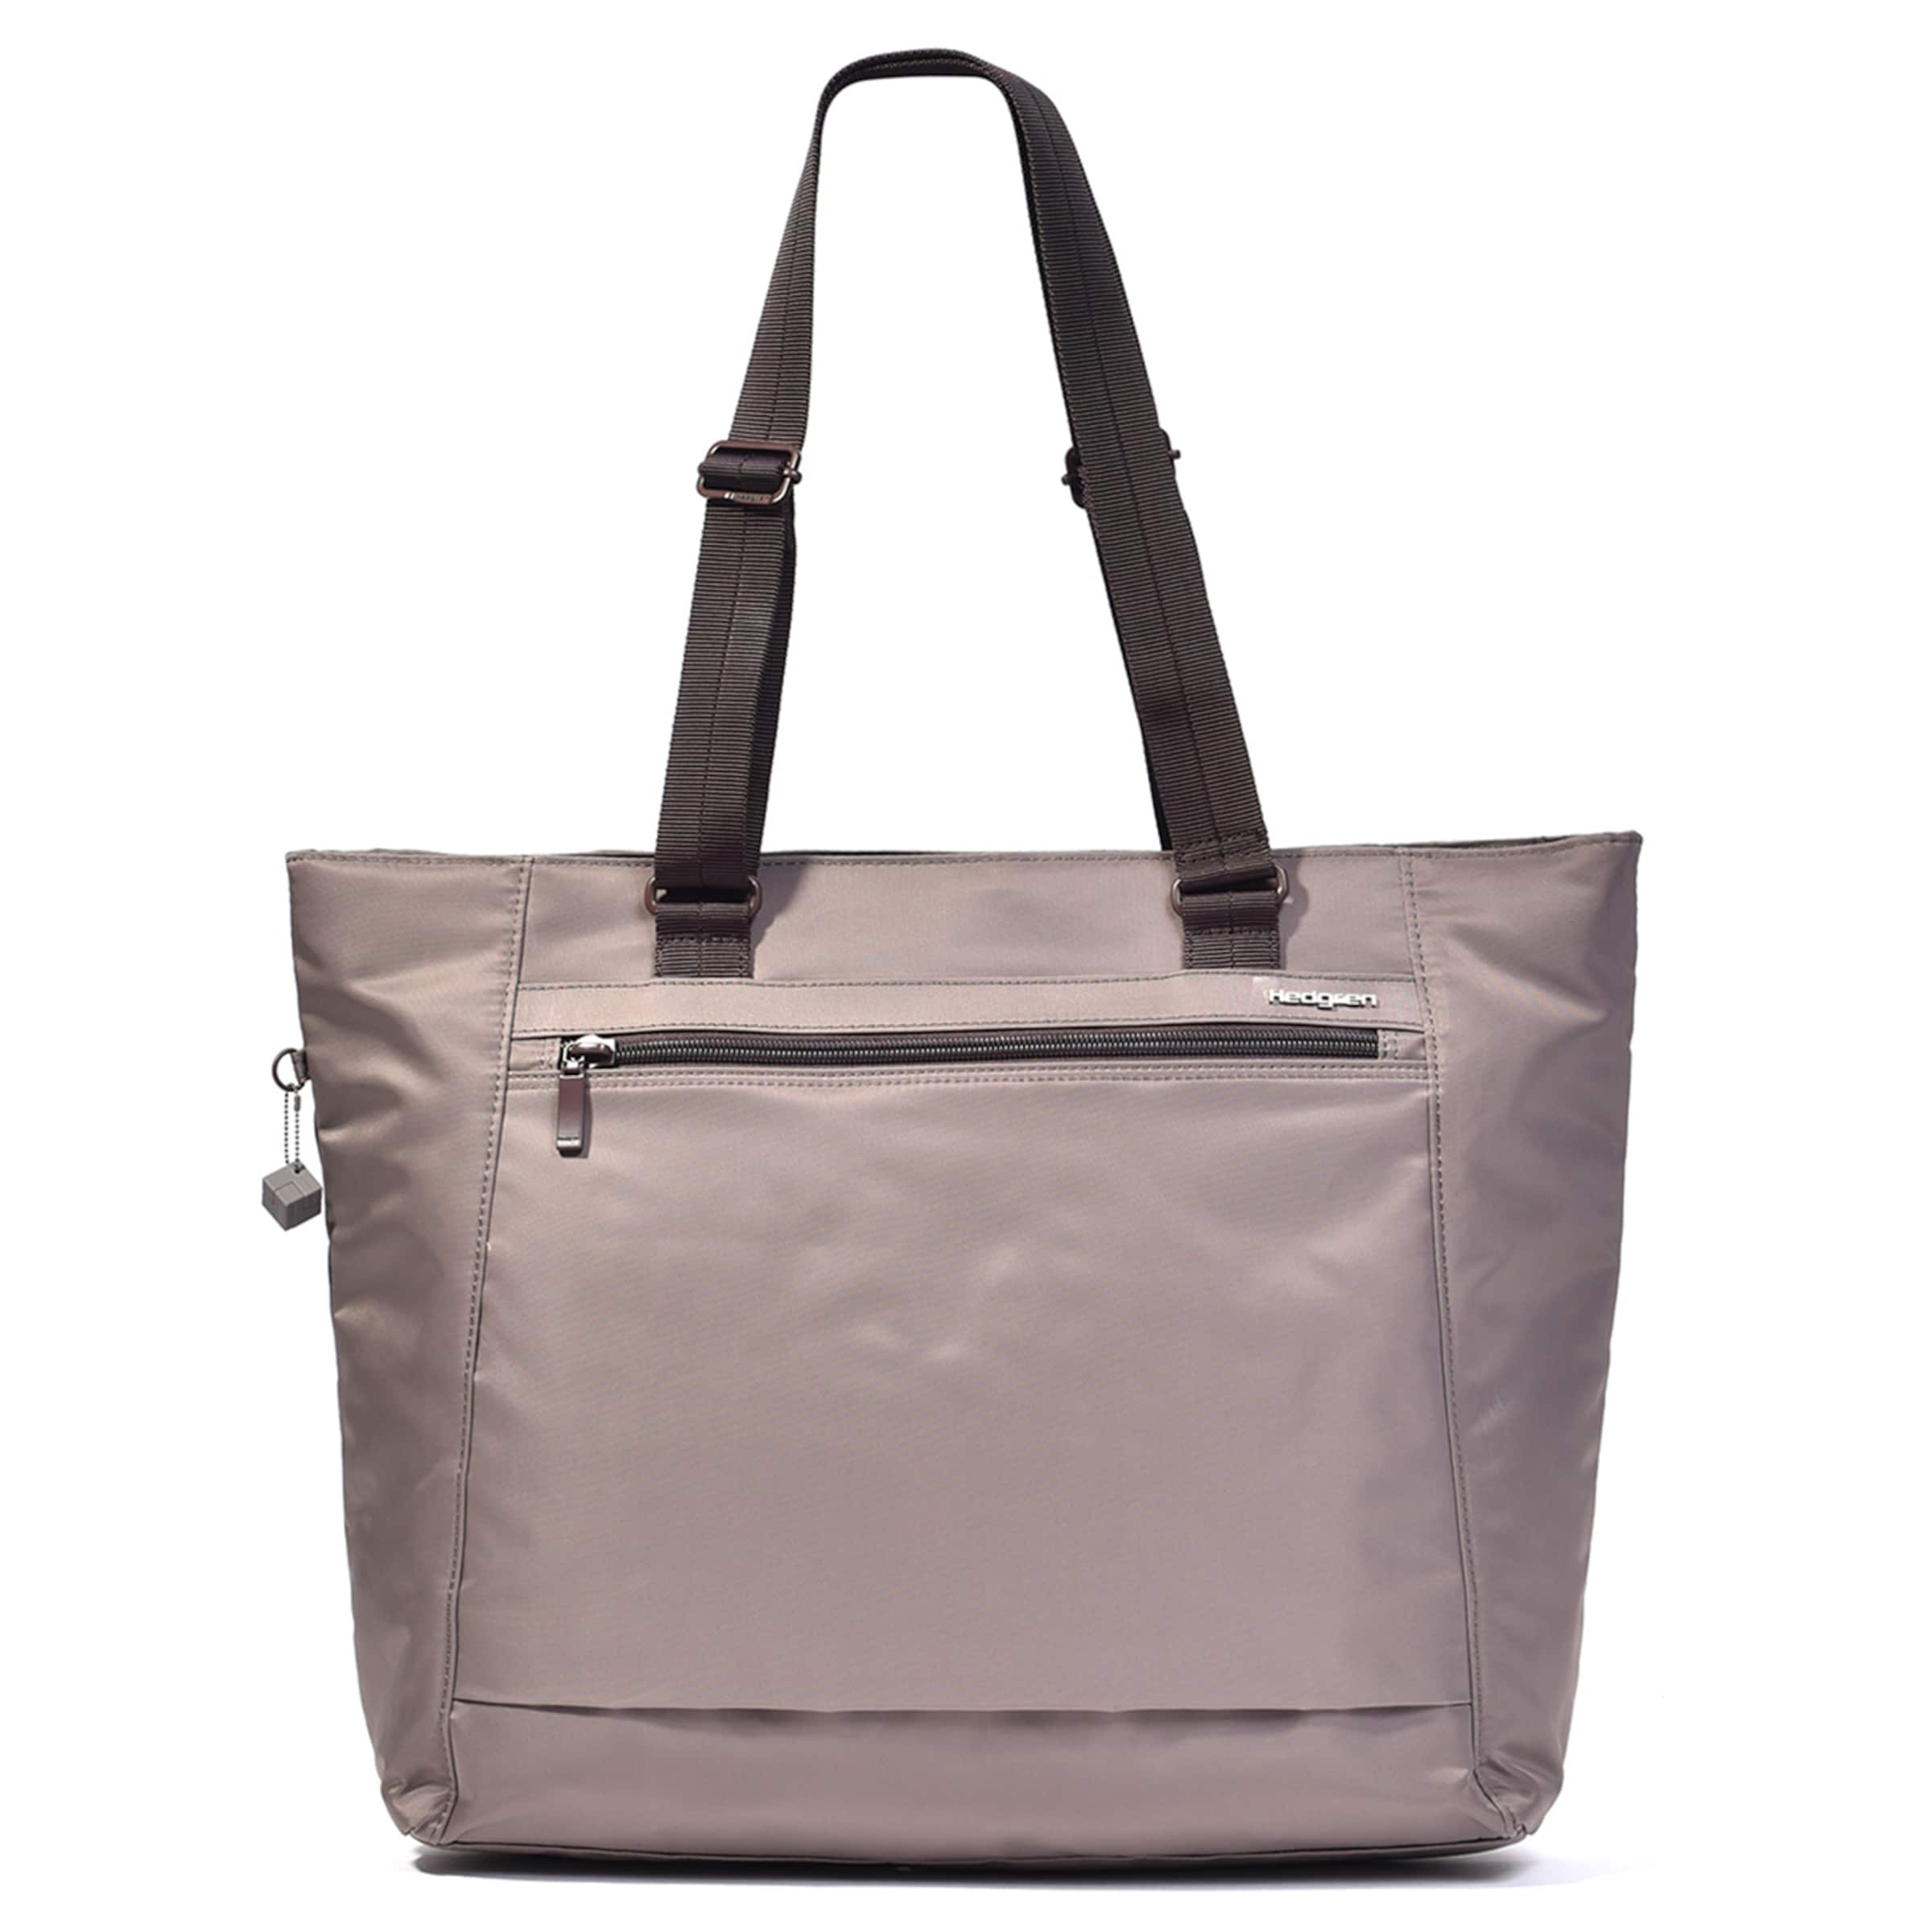 Hedgren Hedgren Beige In Shopper 'elvira' nPXZ8NOk0w